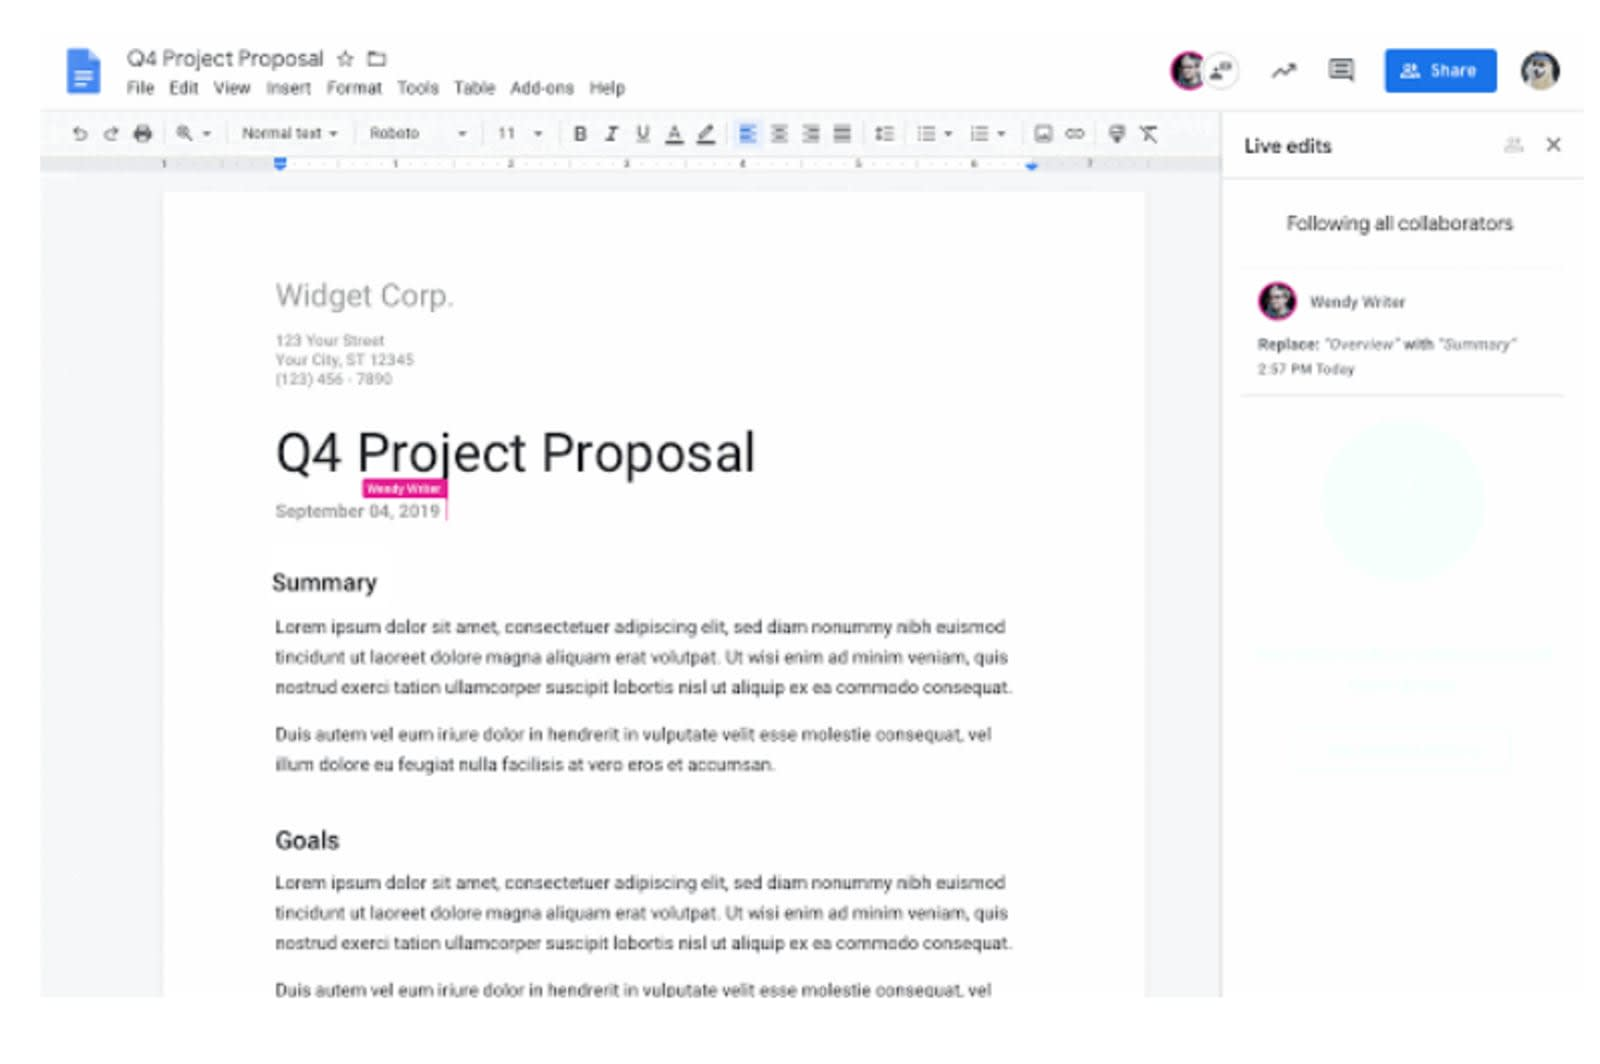 Google Docs 'live edits' feature helps the visually impaired